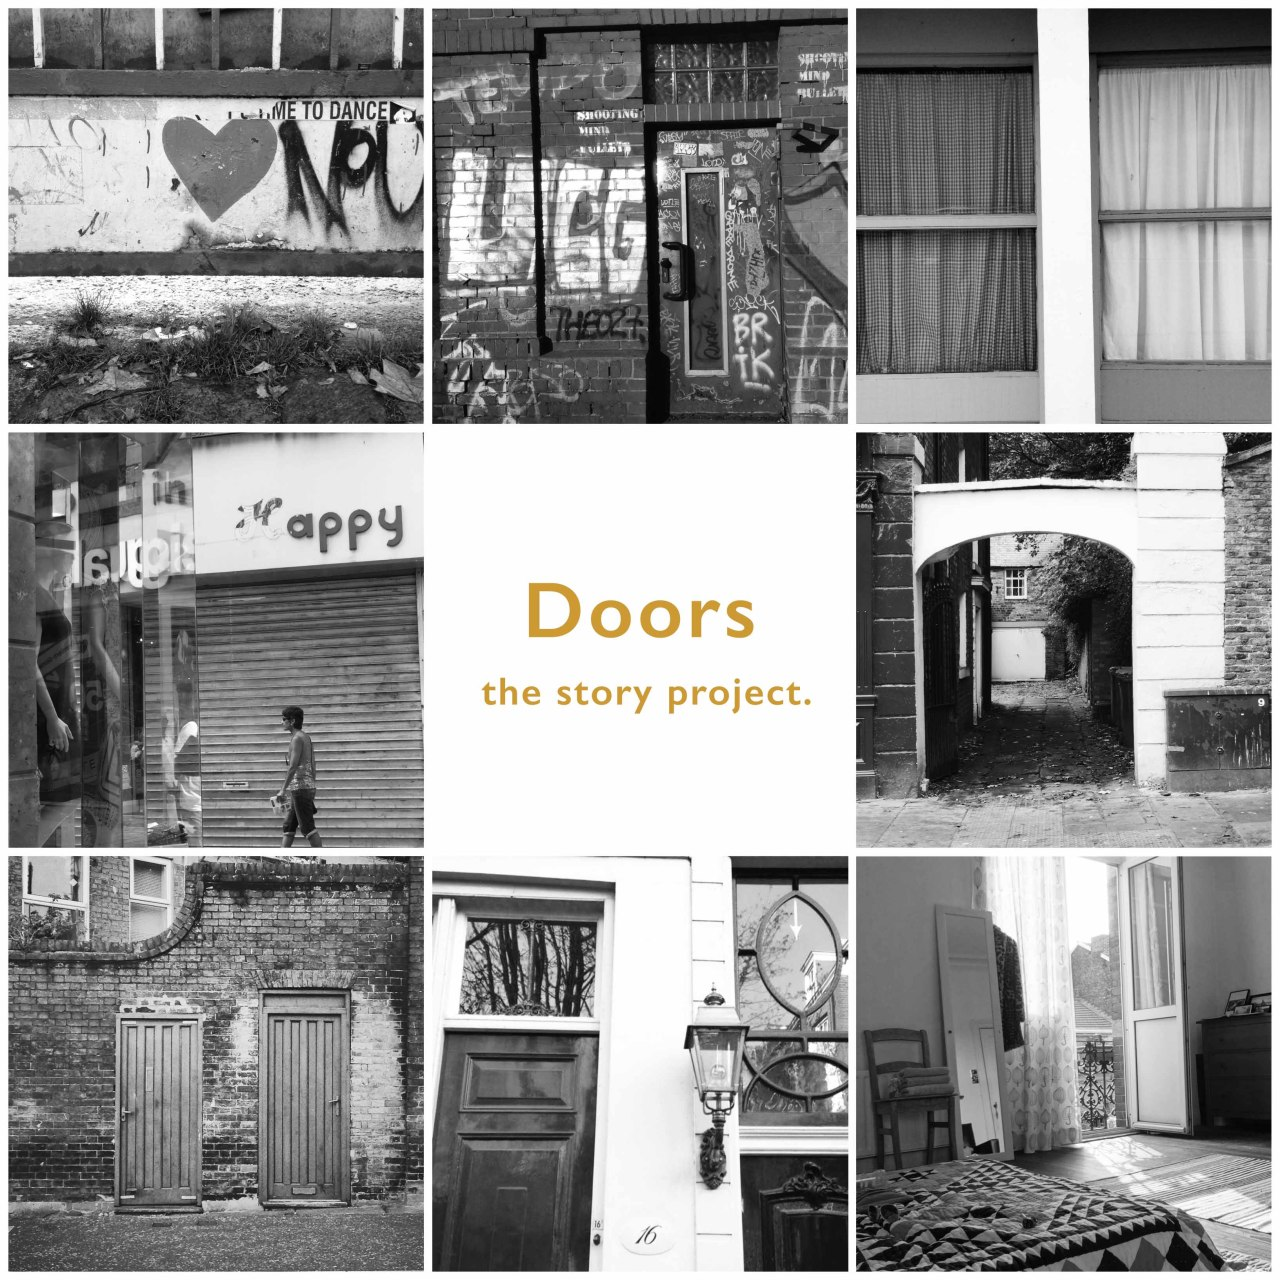 Introducing… my story project - Doors.Last year I got addicted to taking photographs of doors - interesting doors, shabby doors, beautiful doors… I had to give it up because after a while it became noticeable that I really wasn't getting anywhere on time and a lot of the time I was just getting in people's way. Thanks to a lot of encouragement after the American Travel Journals from readers of this blog, I've decided to keep going with the stories and to see if I can come up with a collection on the themes of doors, locks, locked in, locked out, small spaces and a likely morgan-sized dose of peril. The first story is written and It's called FRANKFURT… because it takes place in Frankfurt. I'm running before I can walk. I hope you like it. Read here.Then there was FOOTBALL METAPHORS a story from York.Then came BATHROOM DOOR from a nice bit of Walthamstow.